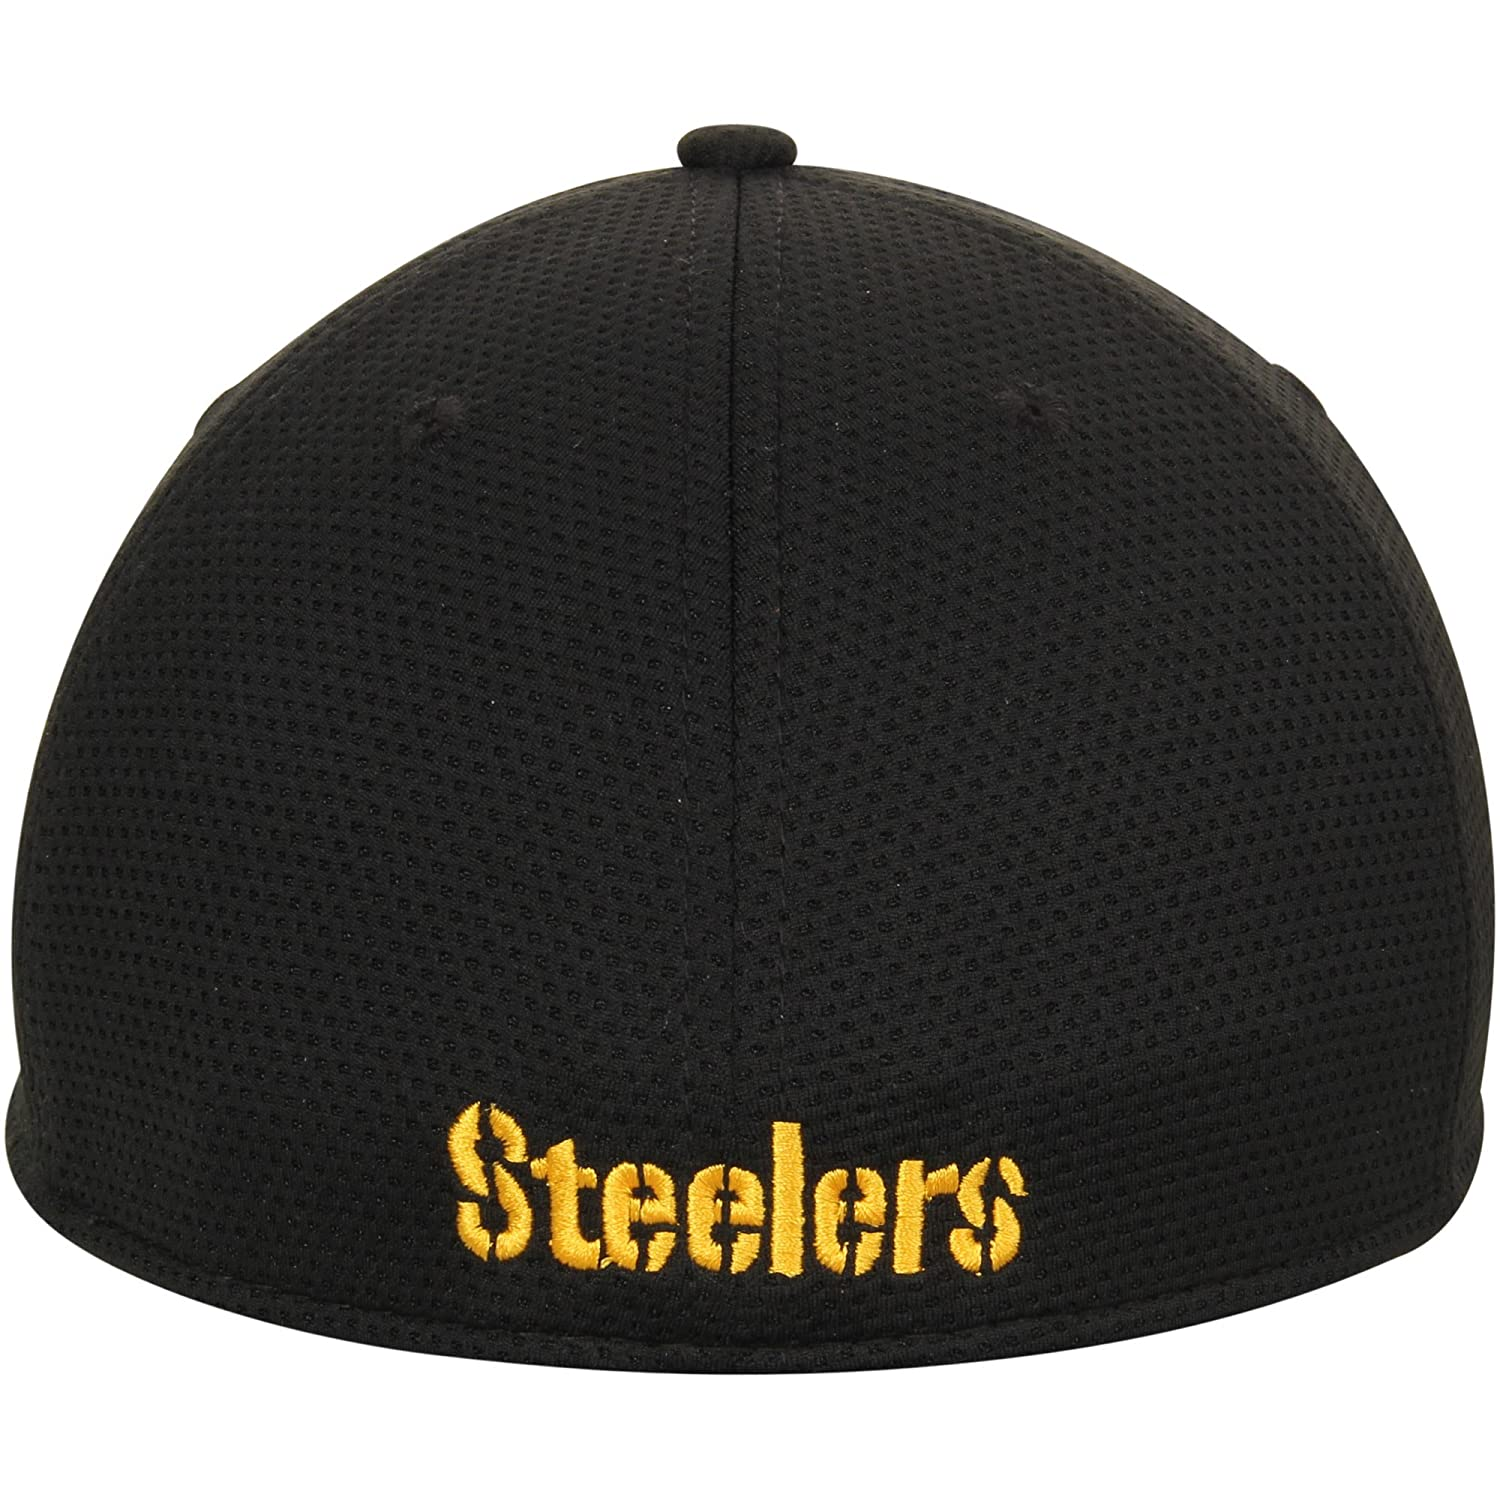 8f853d08a Amazon.com  New Era Authentic Pittsburgh Steelers NFL 39THIRTY Black Tone  Tech Flex Fit Hat  Sports   Outdoors